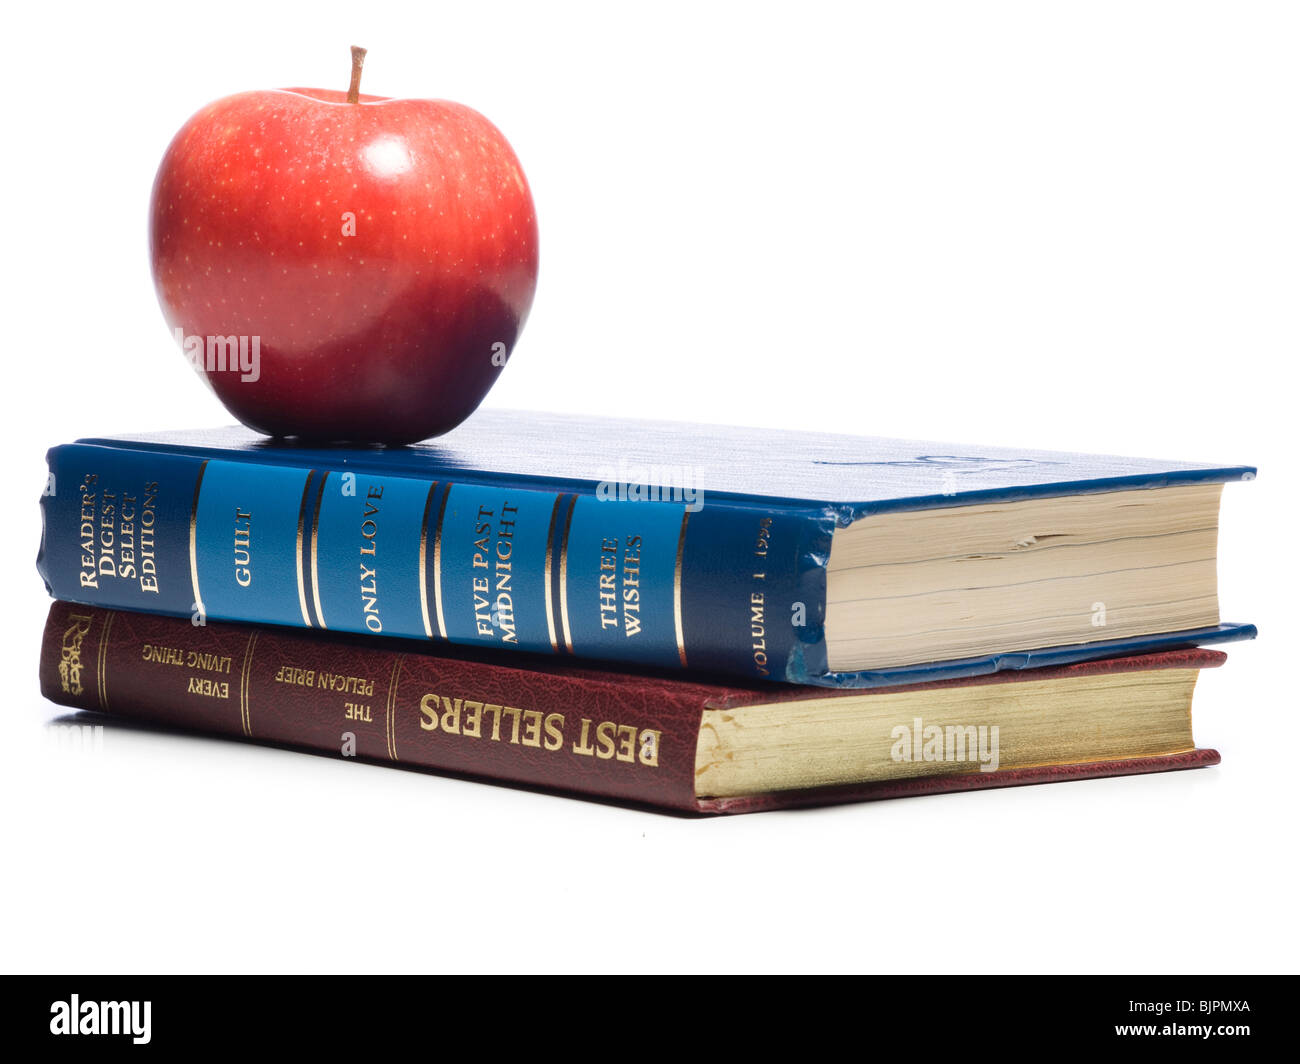 Two books with a red apple - Stock Image